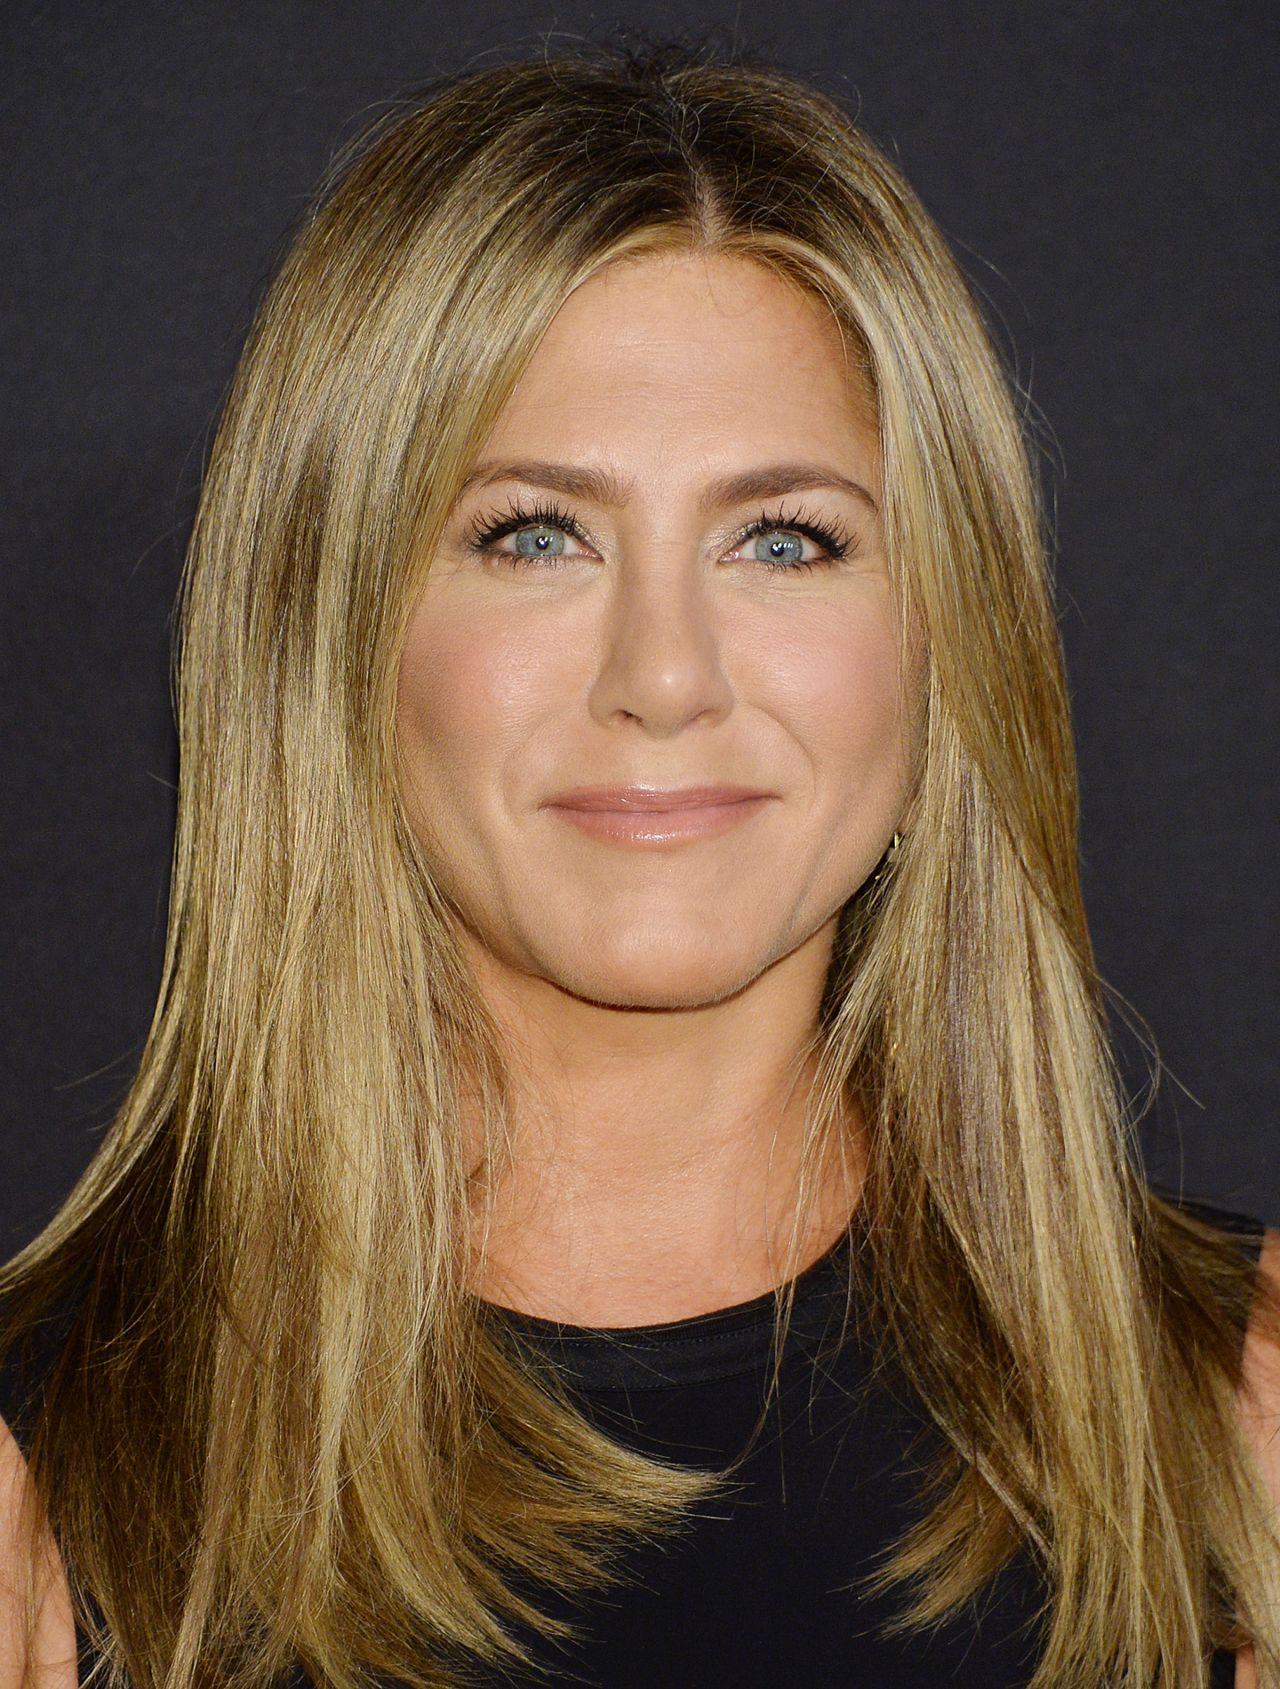 Jennifer Aniston Latest Photos - CelebMafia